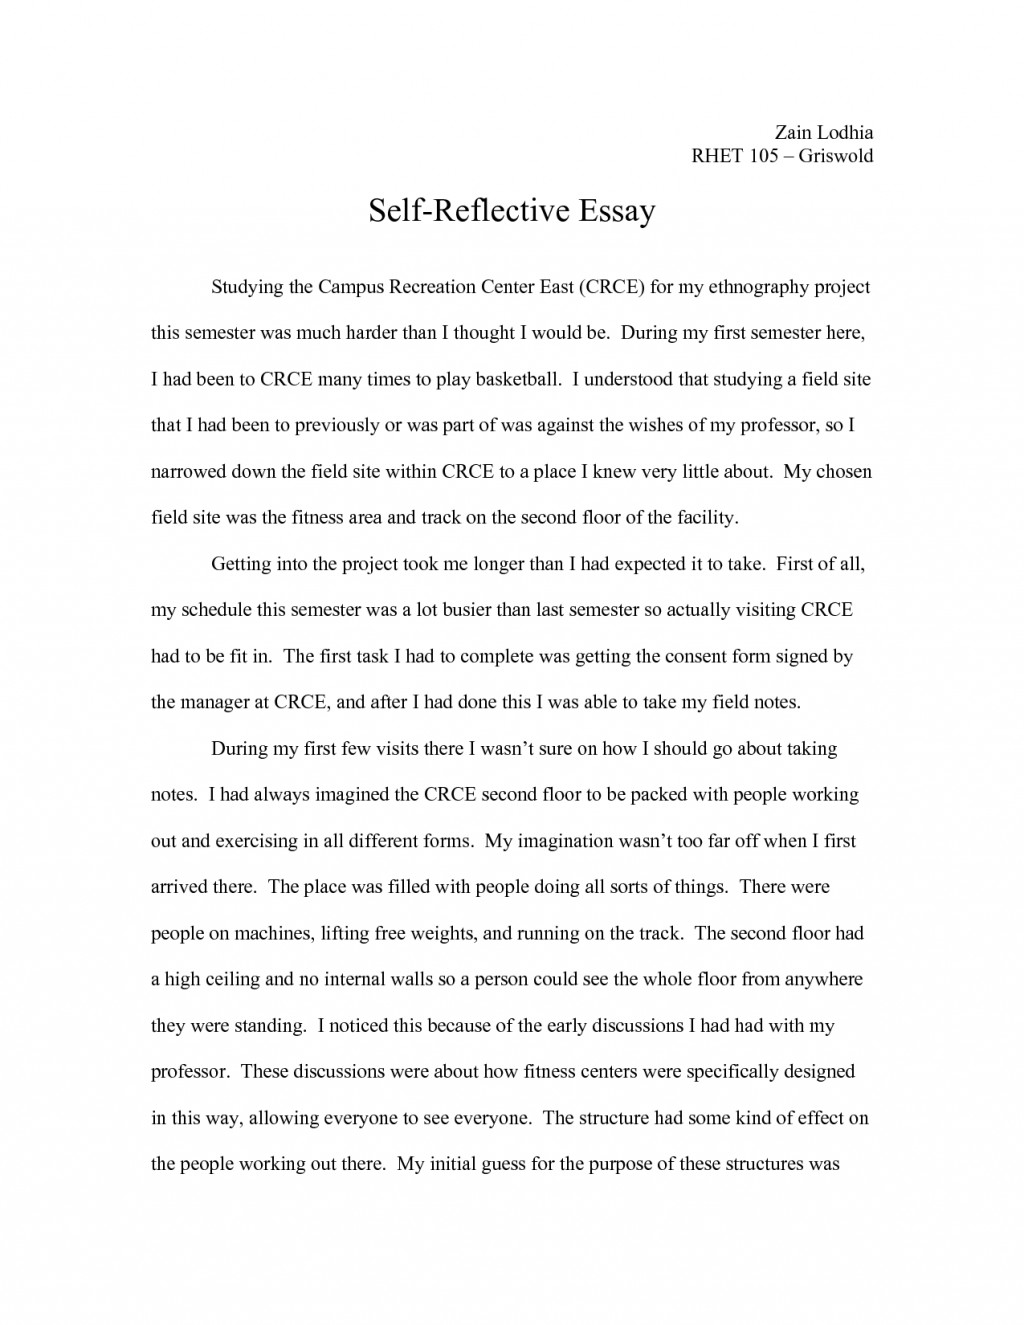 028 How To Write And Essay Qal0pwnf46 Unique An Paper In Apa Format Conclusion Mla Large